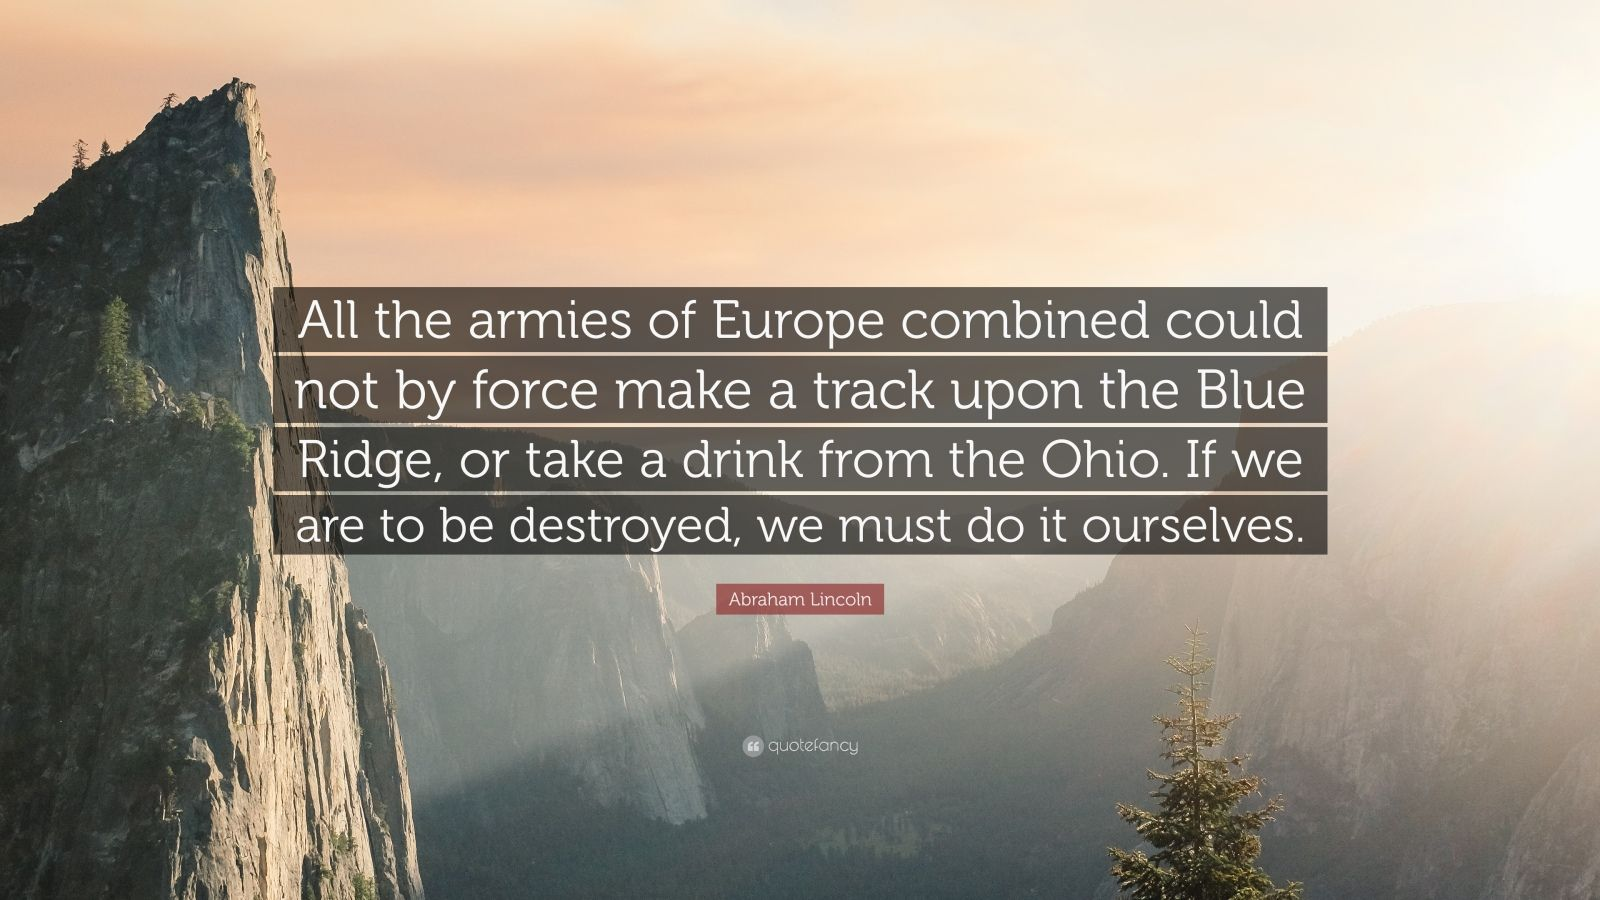 """Abraham Lincoln Quote: """"All the armies of Europe combined could not by force make a track upon the Blue Ridge, or take a drink from the Ohio. If we are to be destroyed, we must do it ourselves."""""""